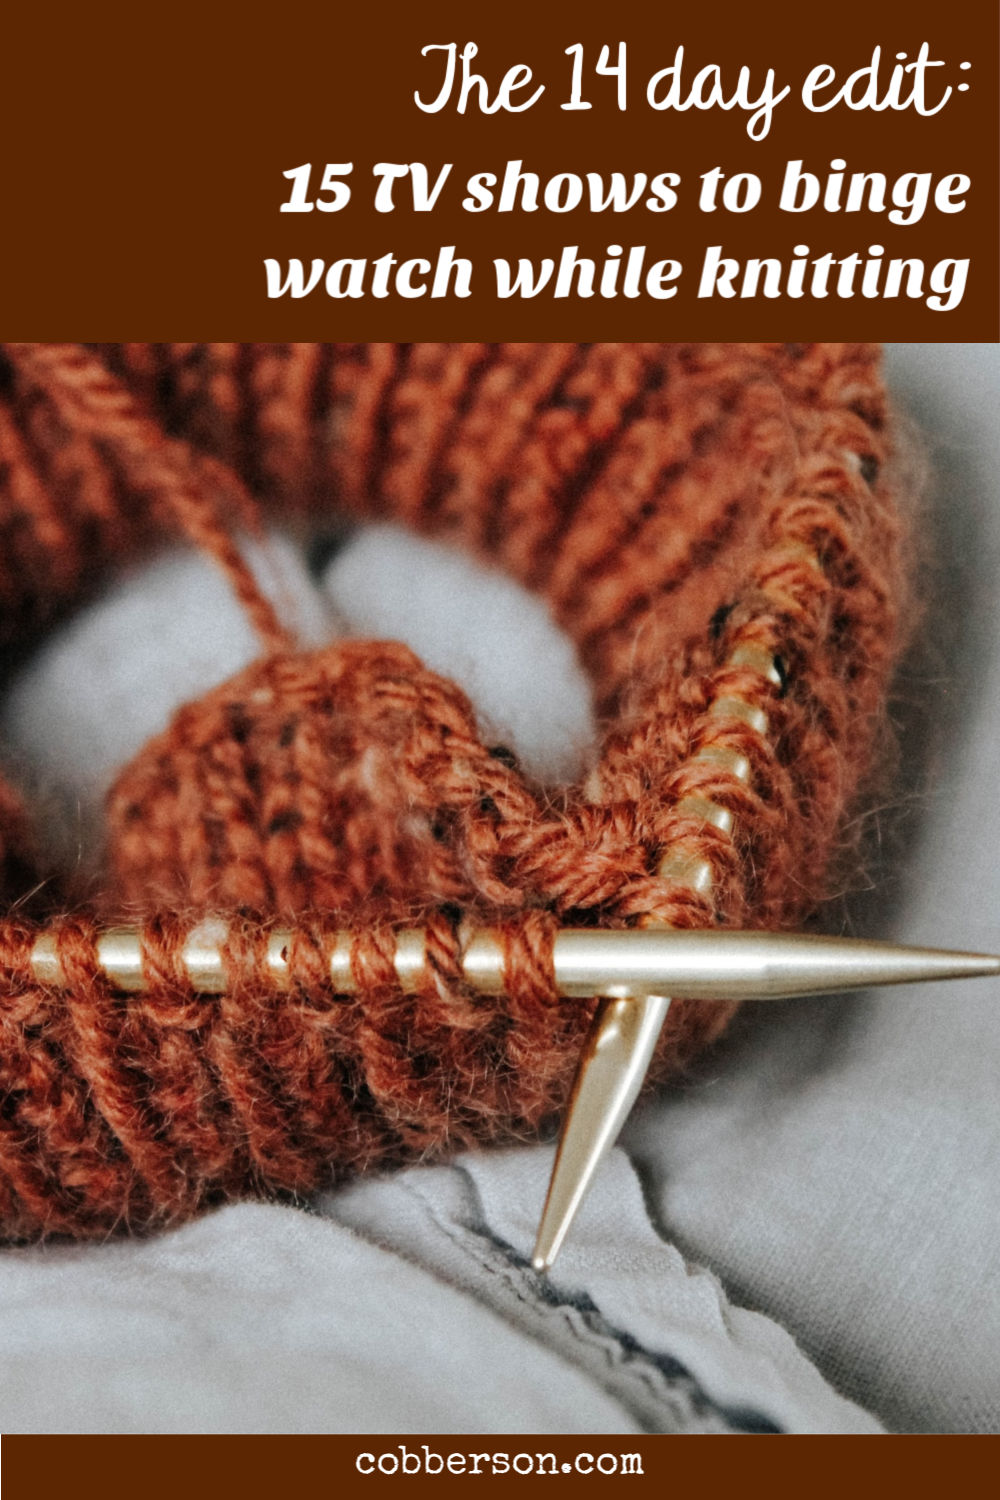 tv shows to binge watch while knitting